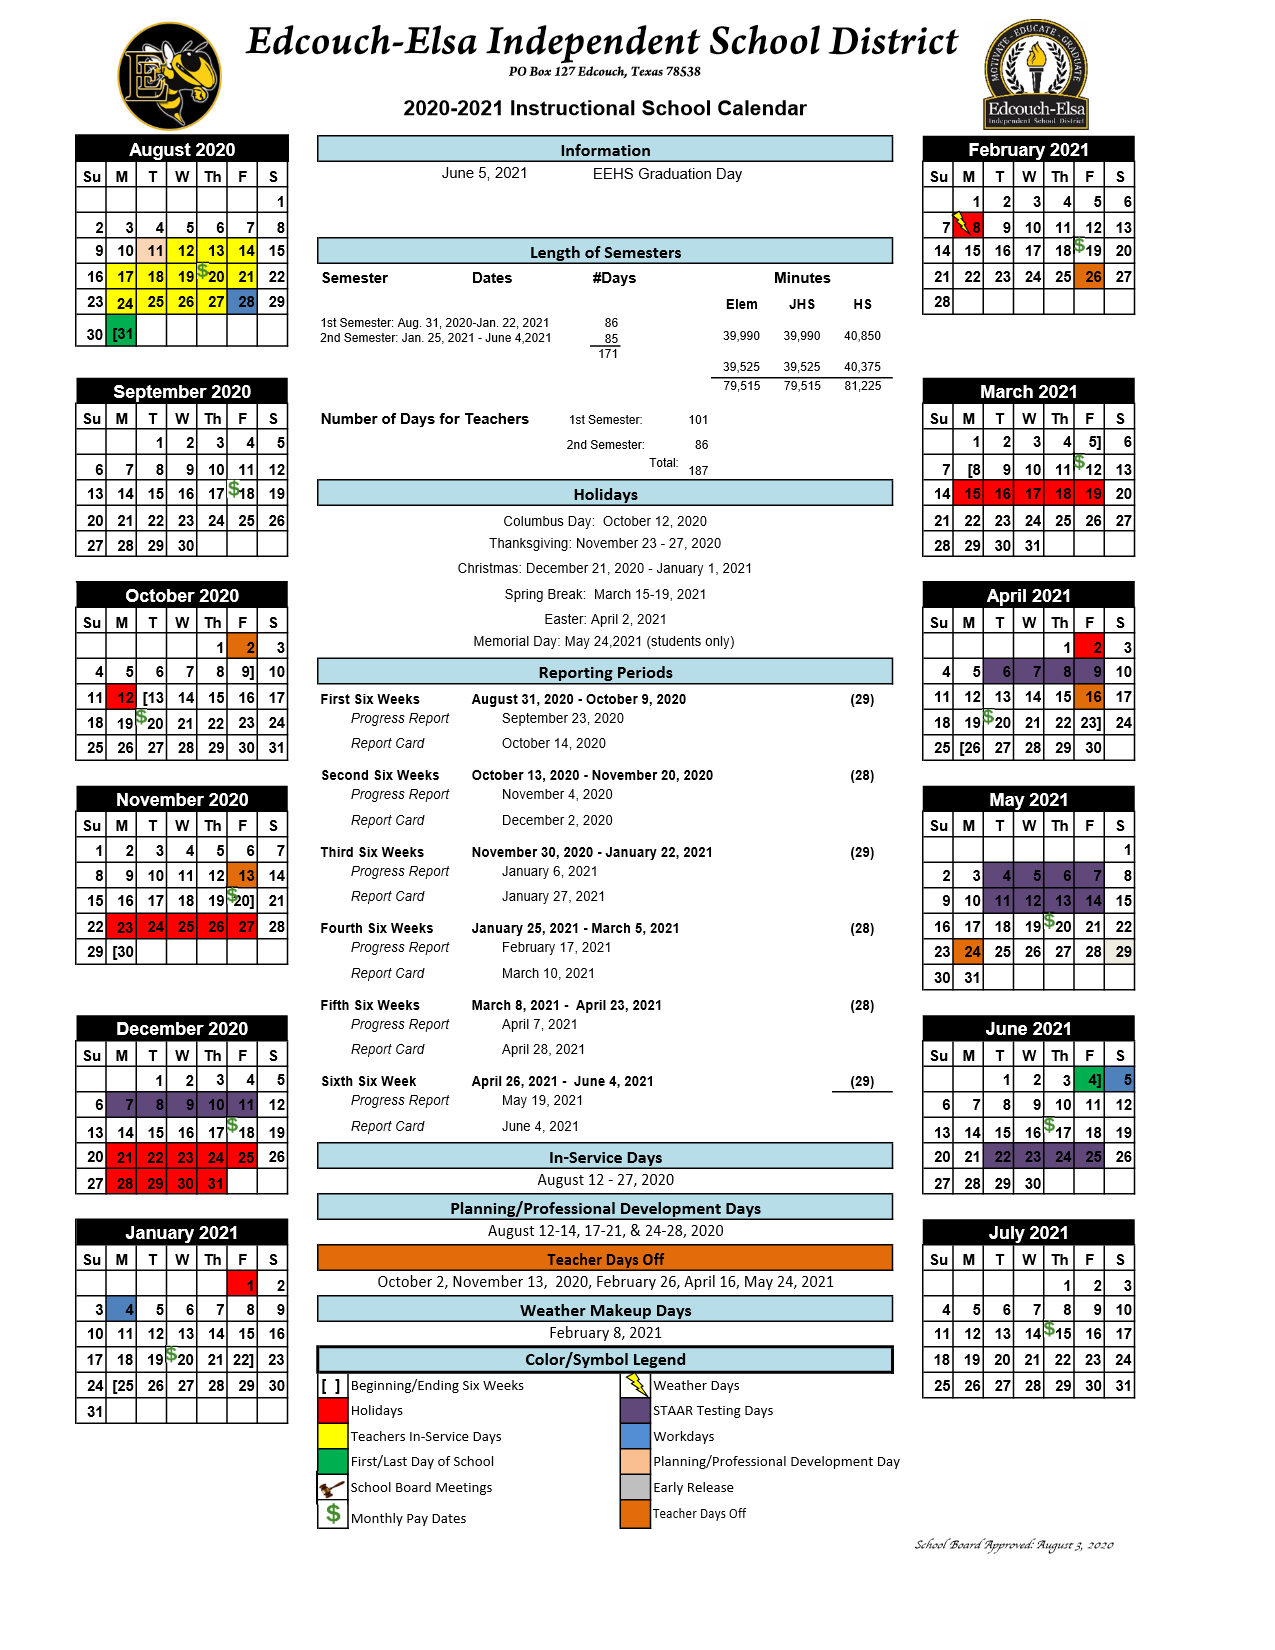 District Calendars / Overview